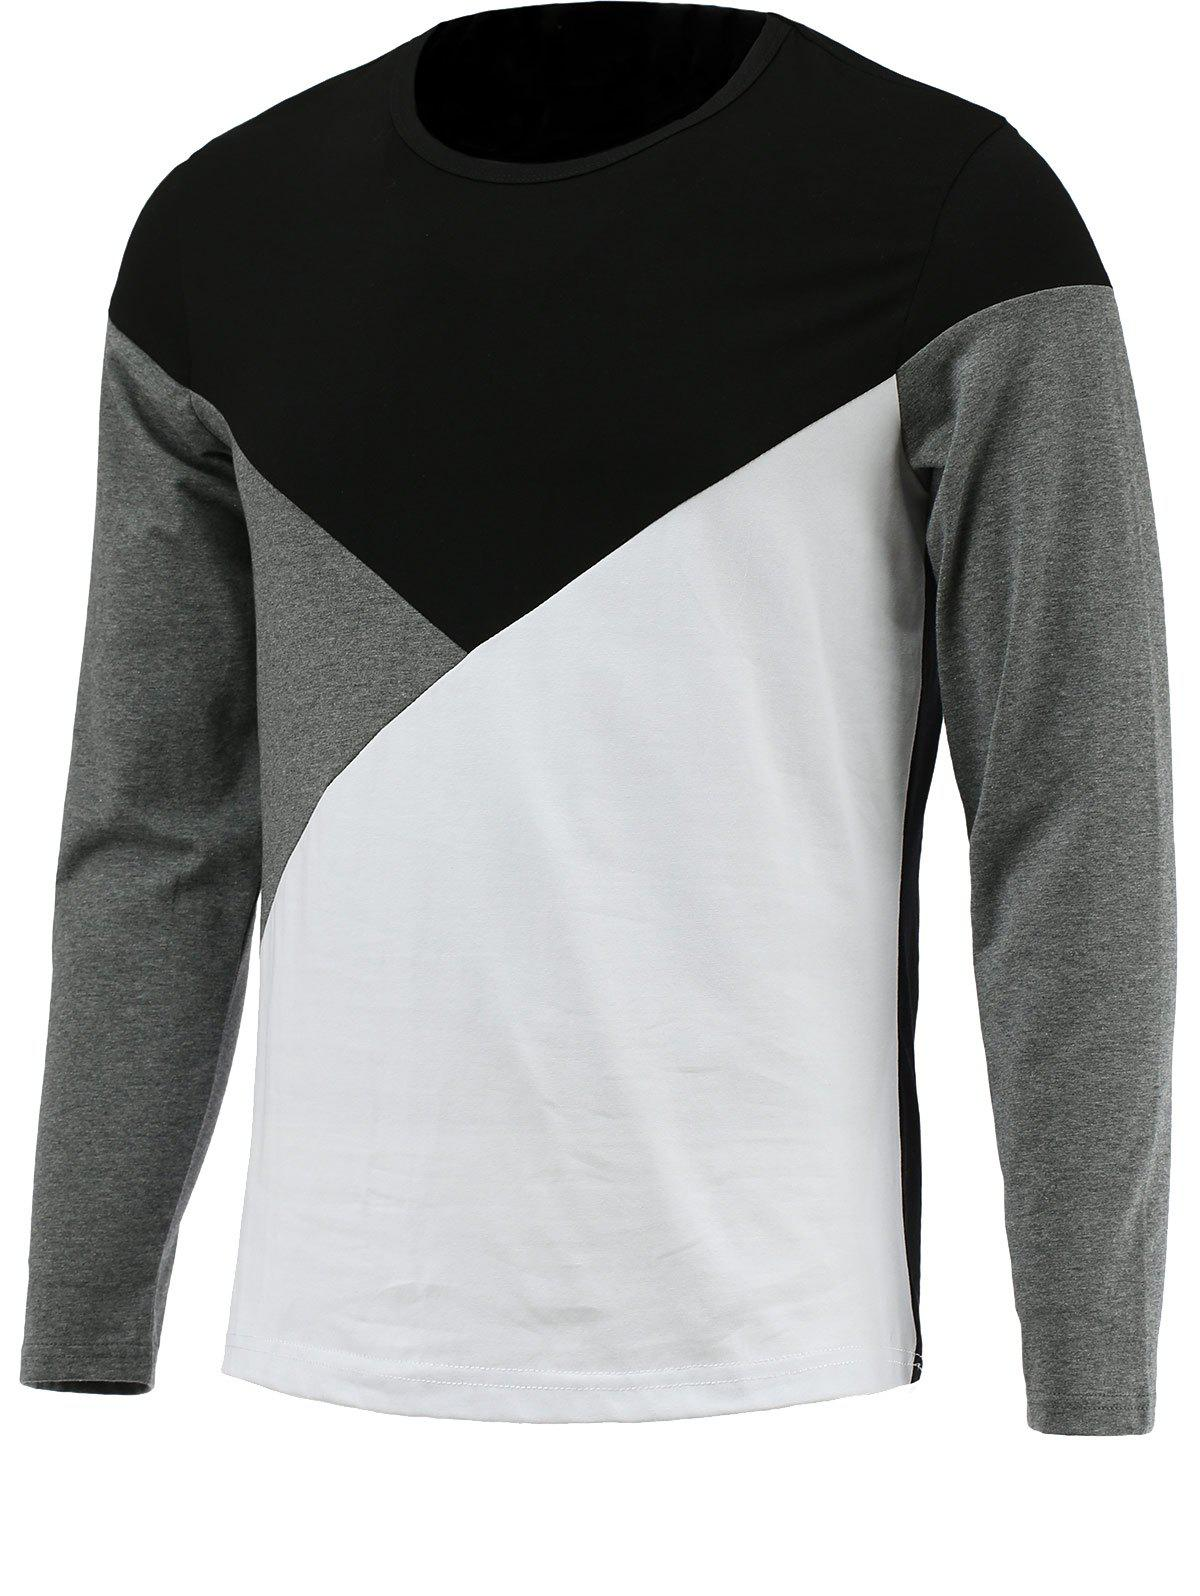 Round Neck Long Sleeve Color Block TeeMEN<br><br>Size: M; Color: BLACK; Material: Cotton Blends; Sleeve Length: Full; Collar: Round Neck; Style: Casual; Pattern Type: Solid; Season: Fall,Spring; Weight: 0.256kg; Package Contents: 1 x T-Shirt;